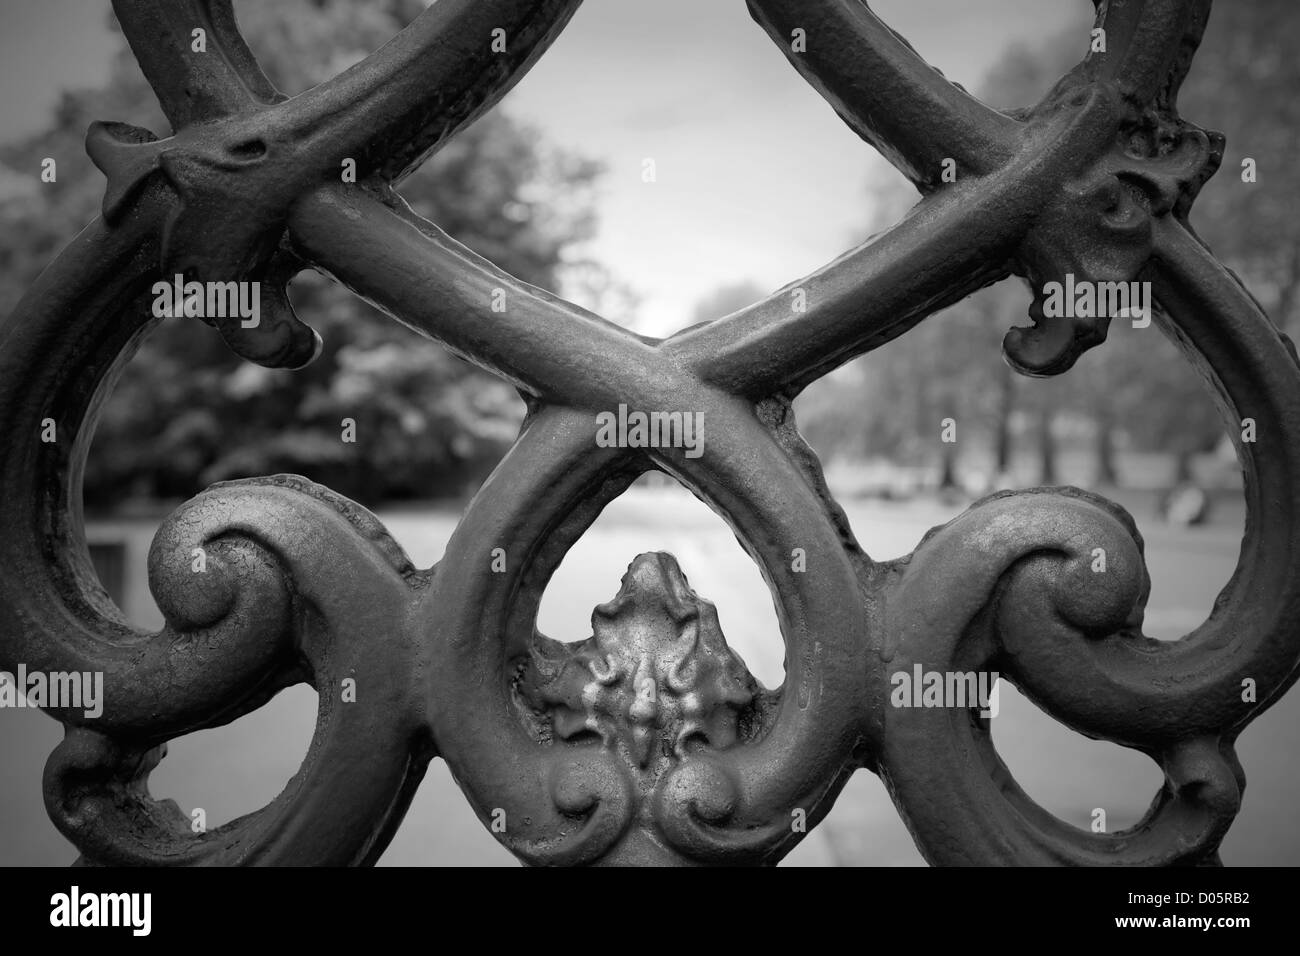 A detail of an ornamental wrought iron gate, London, UK. - Stock Image